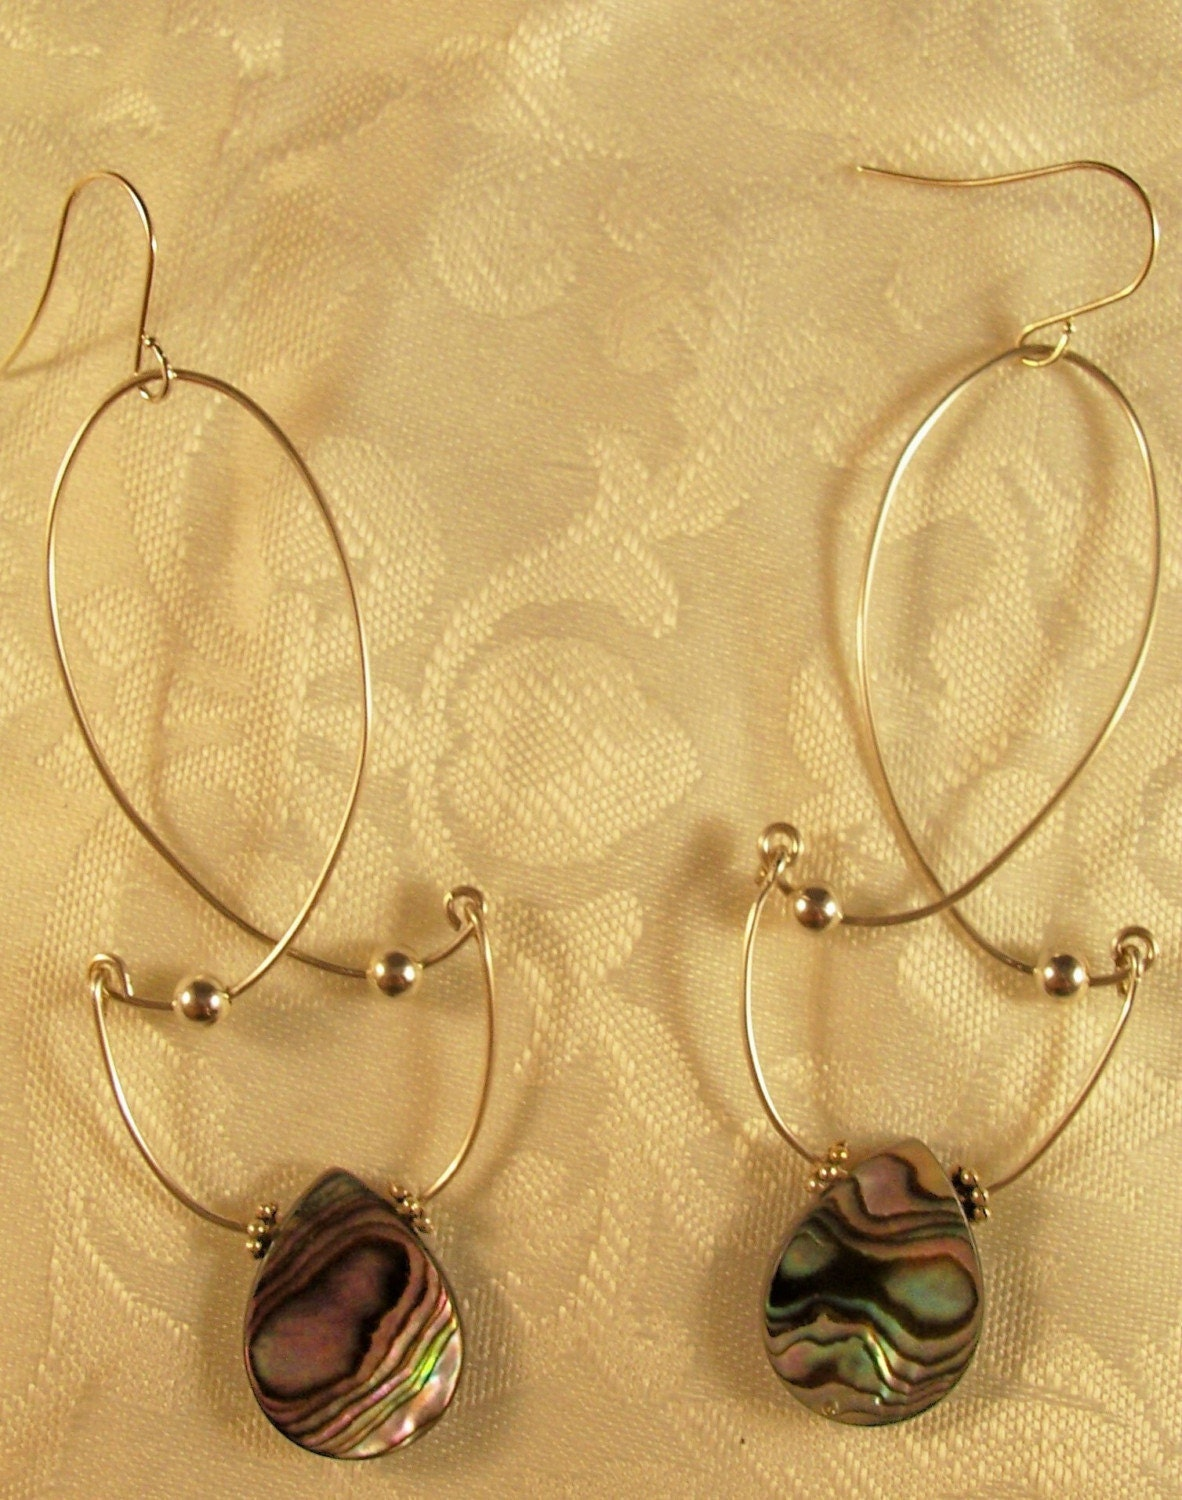 Dancing Paua Shells - Earrings